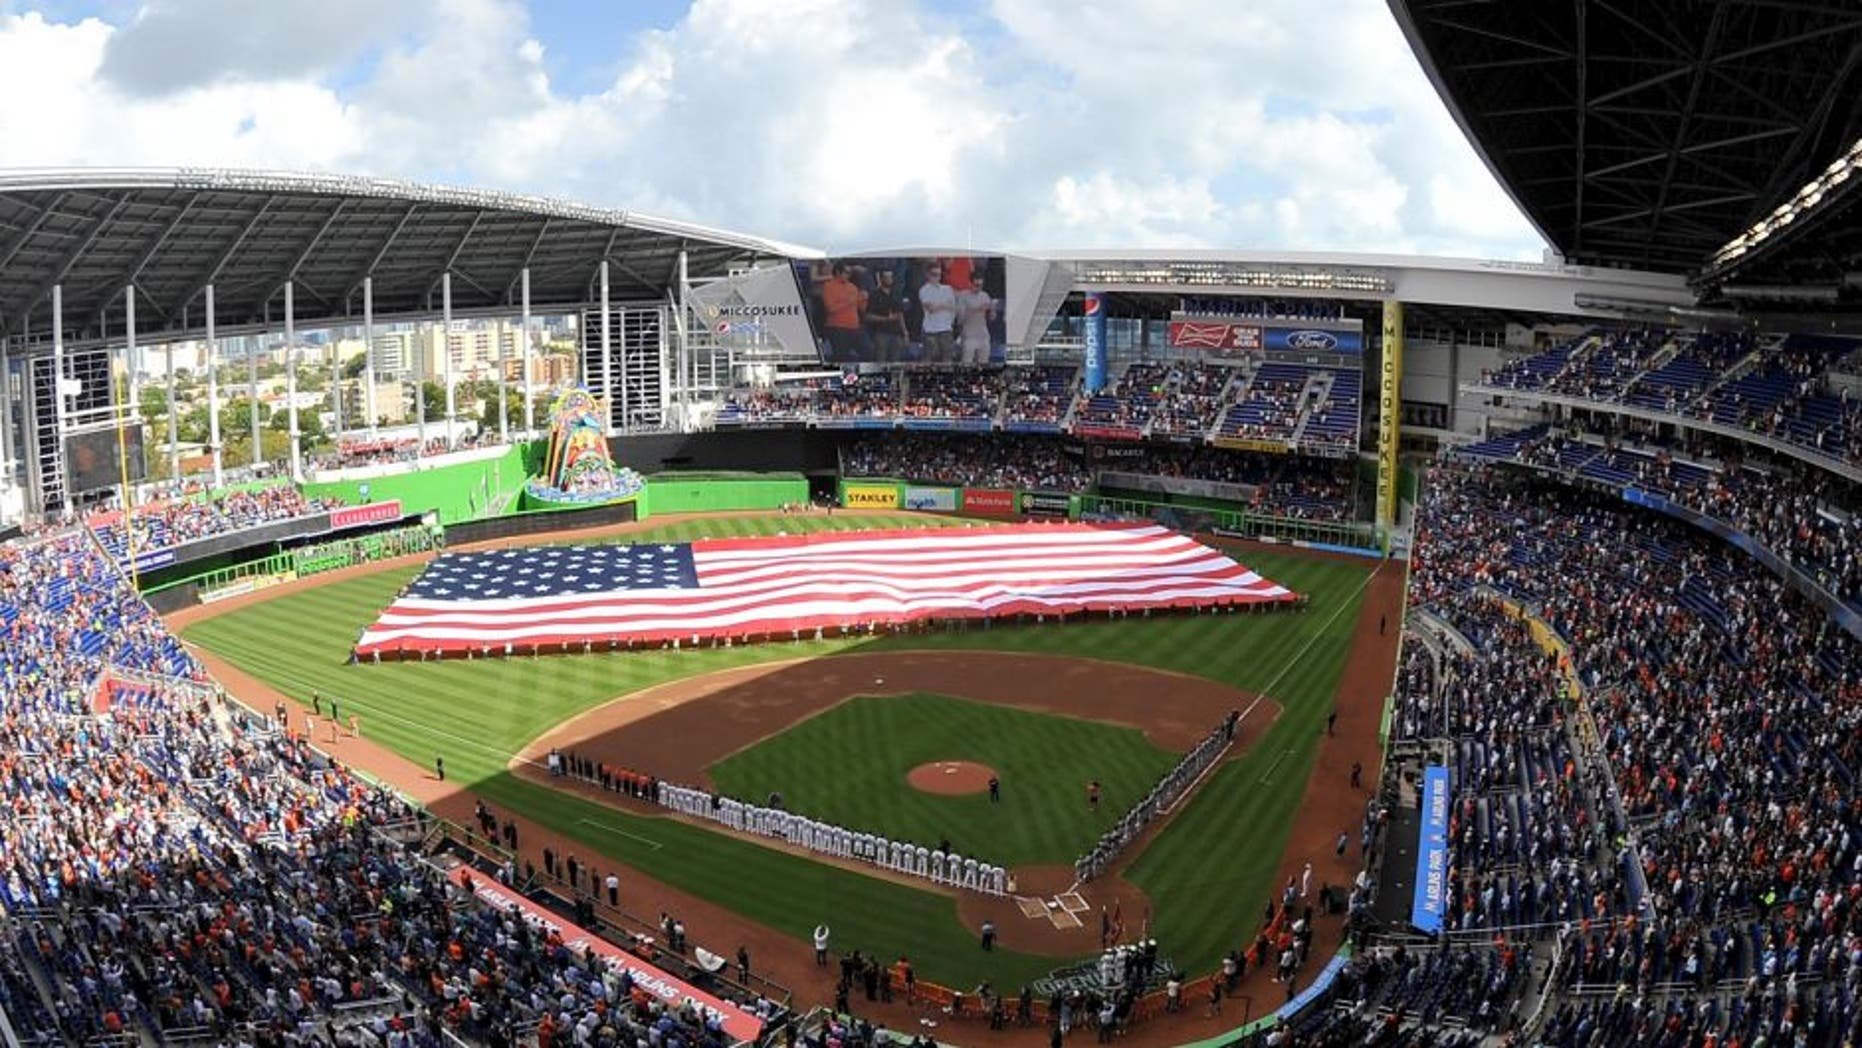 Apr 6, 2015; Miami, FL, USA; A general view of Marlins Park before a game between the Atlanta Braves and the Miami Marlins. Mandatory Credit: Steve Mitchell-USA TODAY Sports